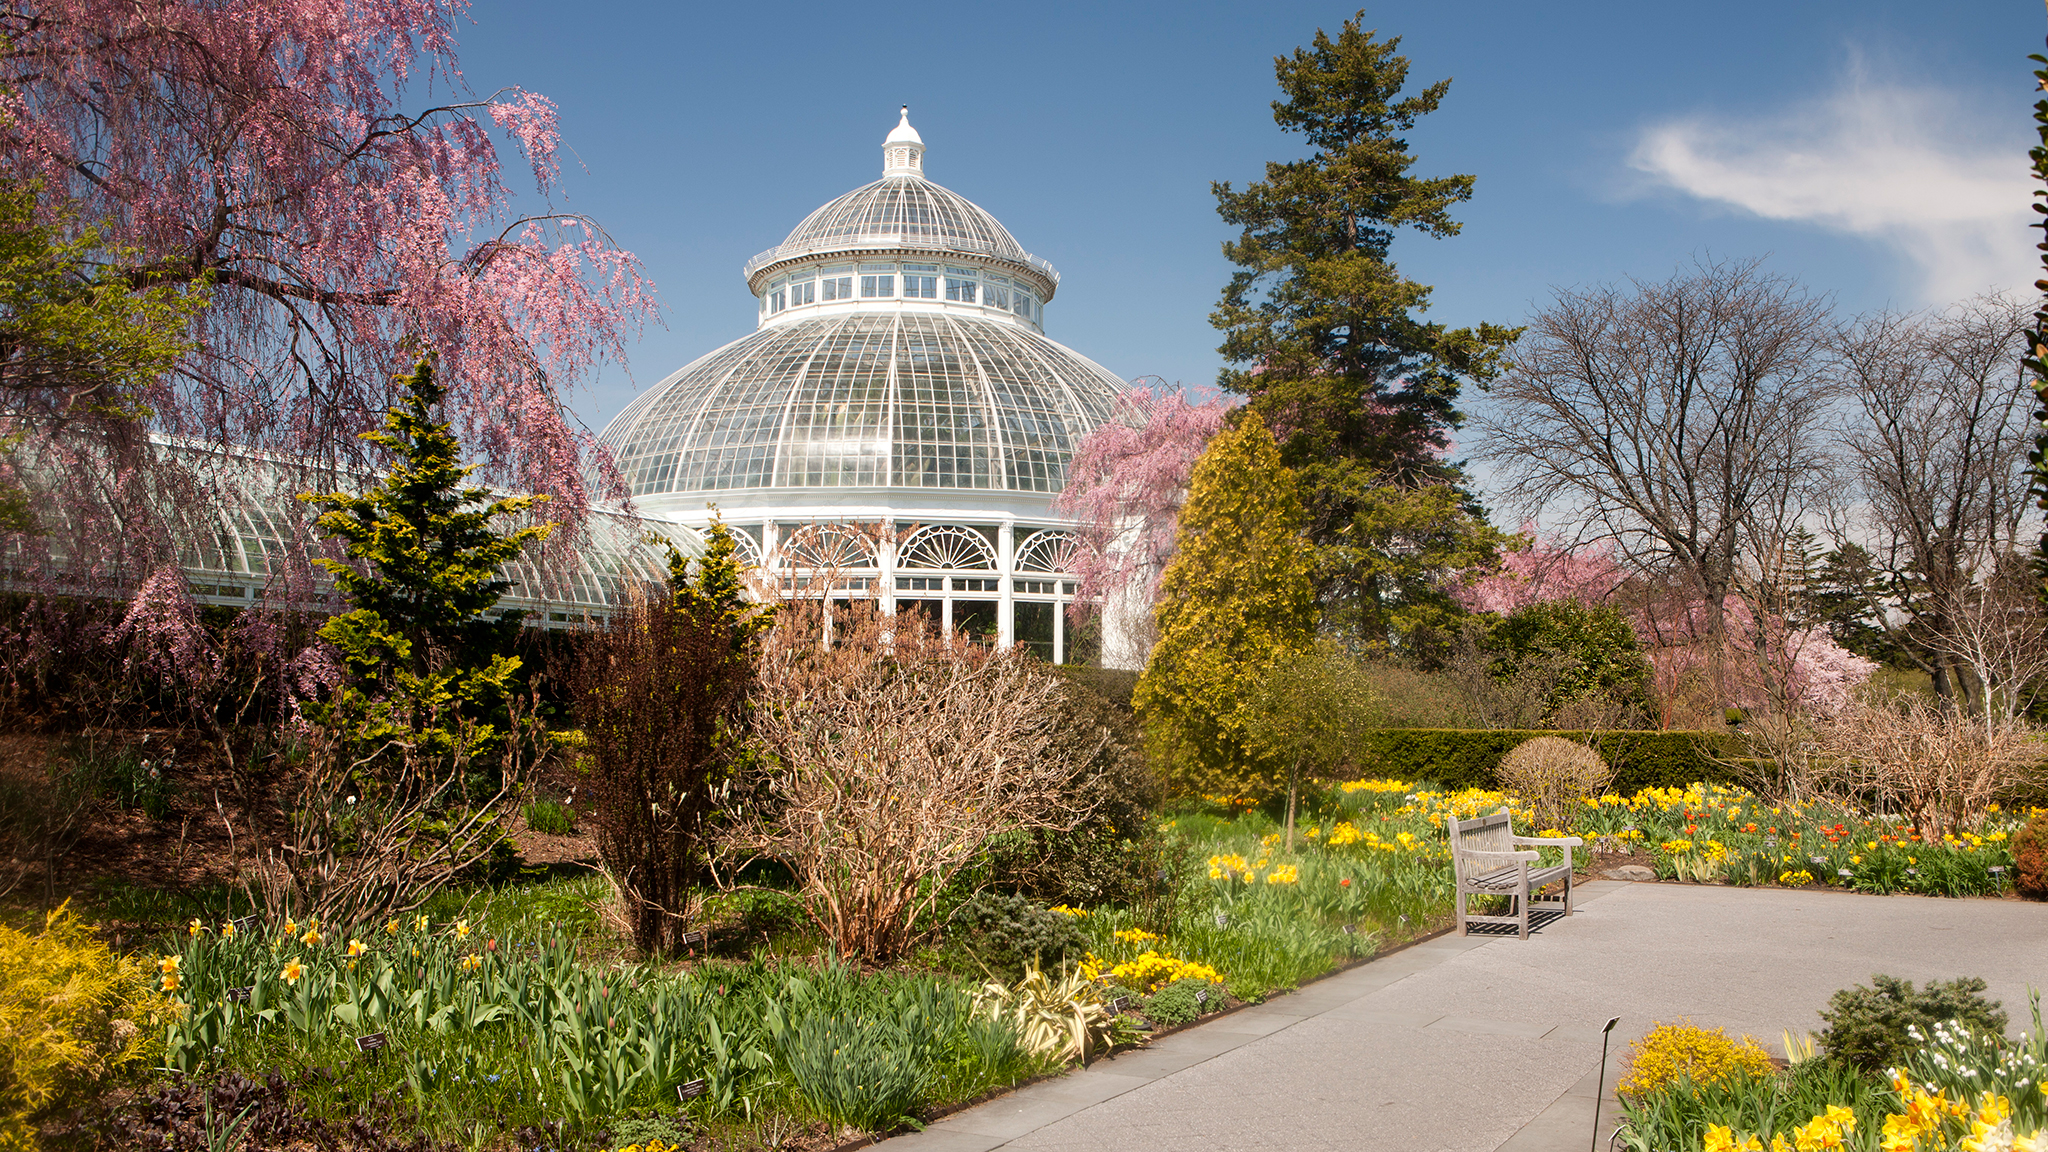 New York Botanical Garden marks its 125th anniversary | Financial Times